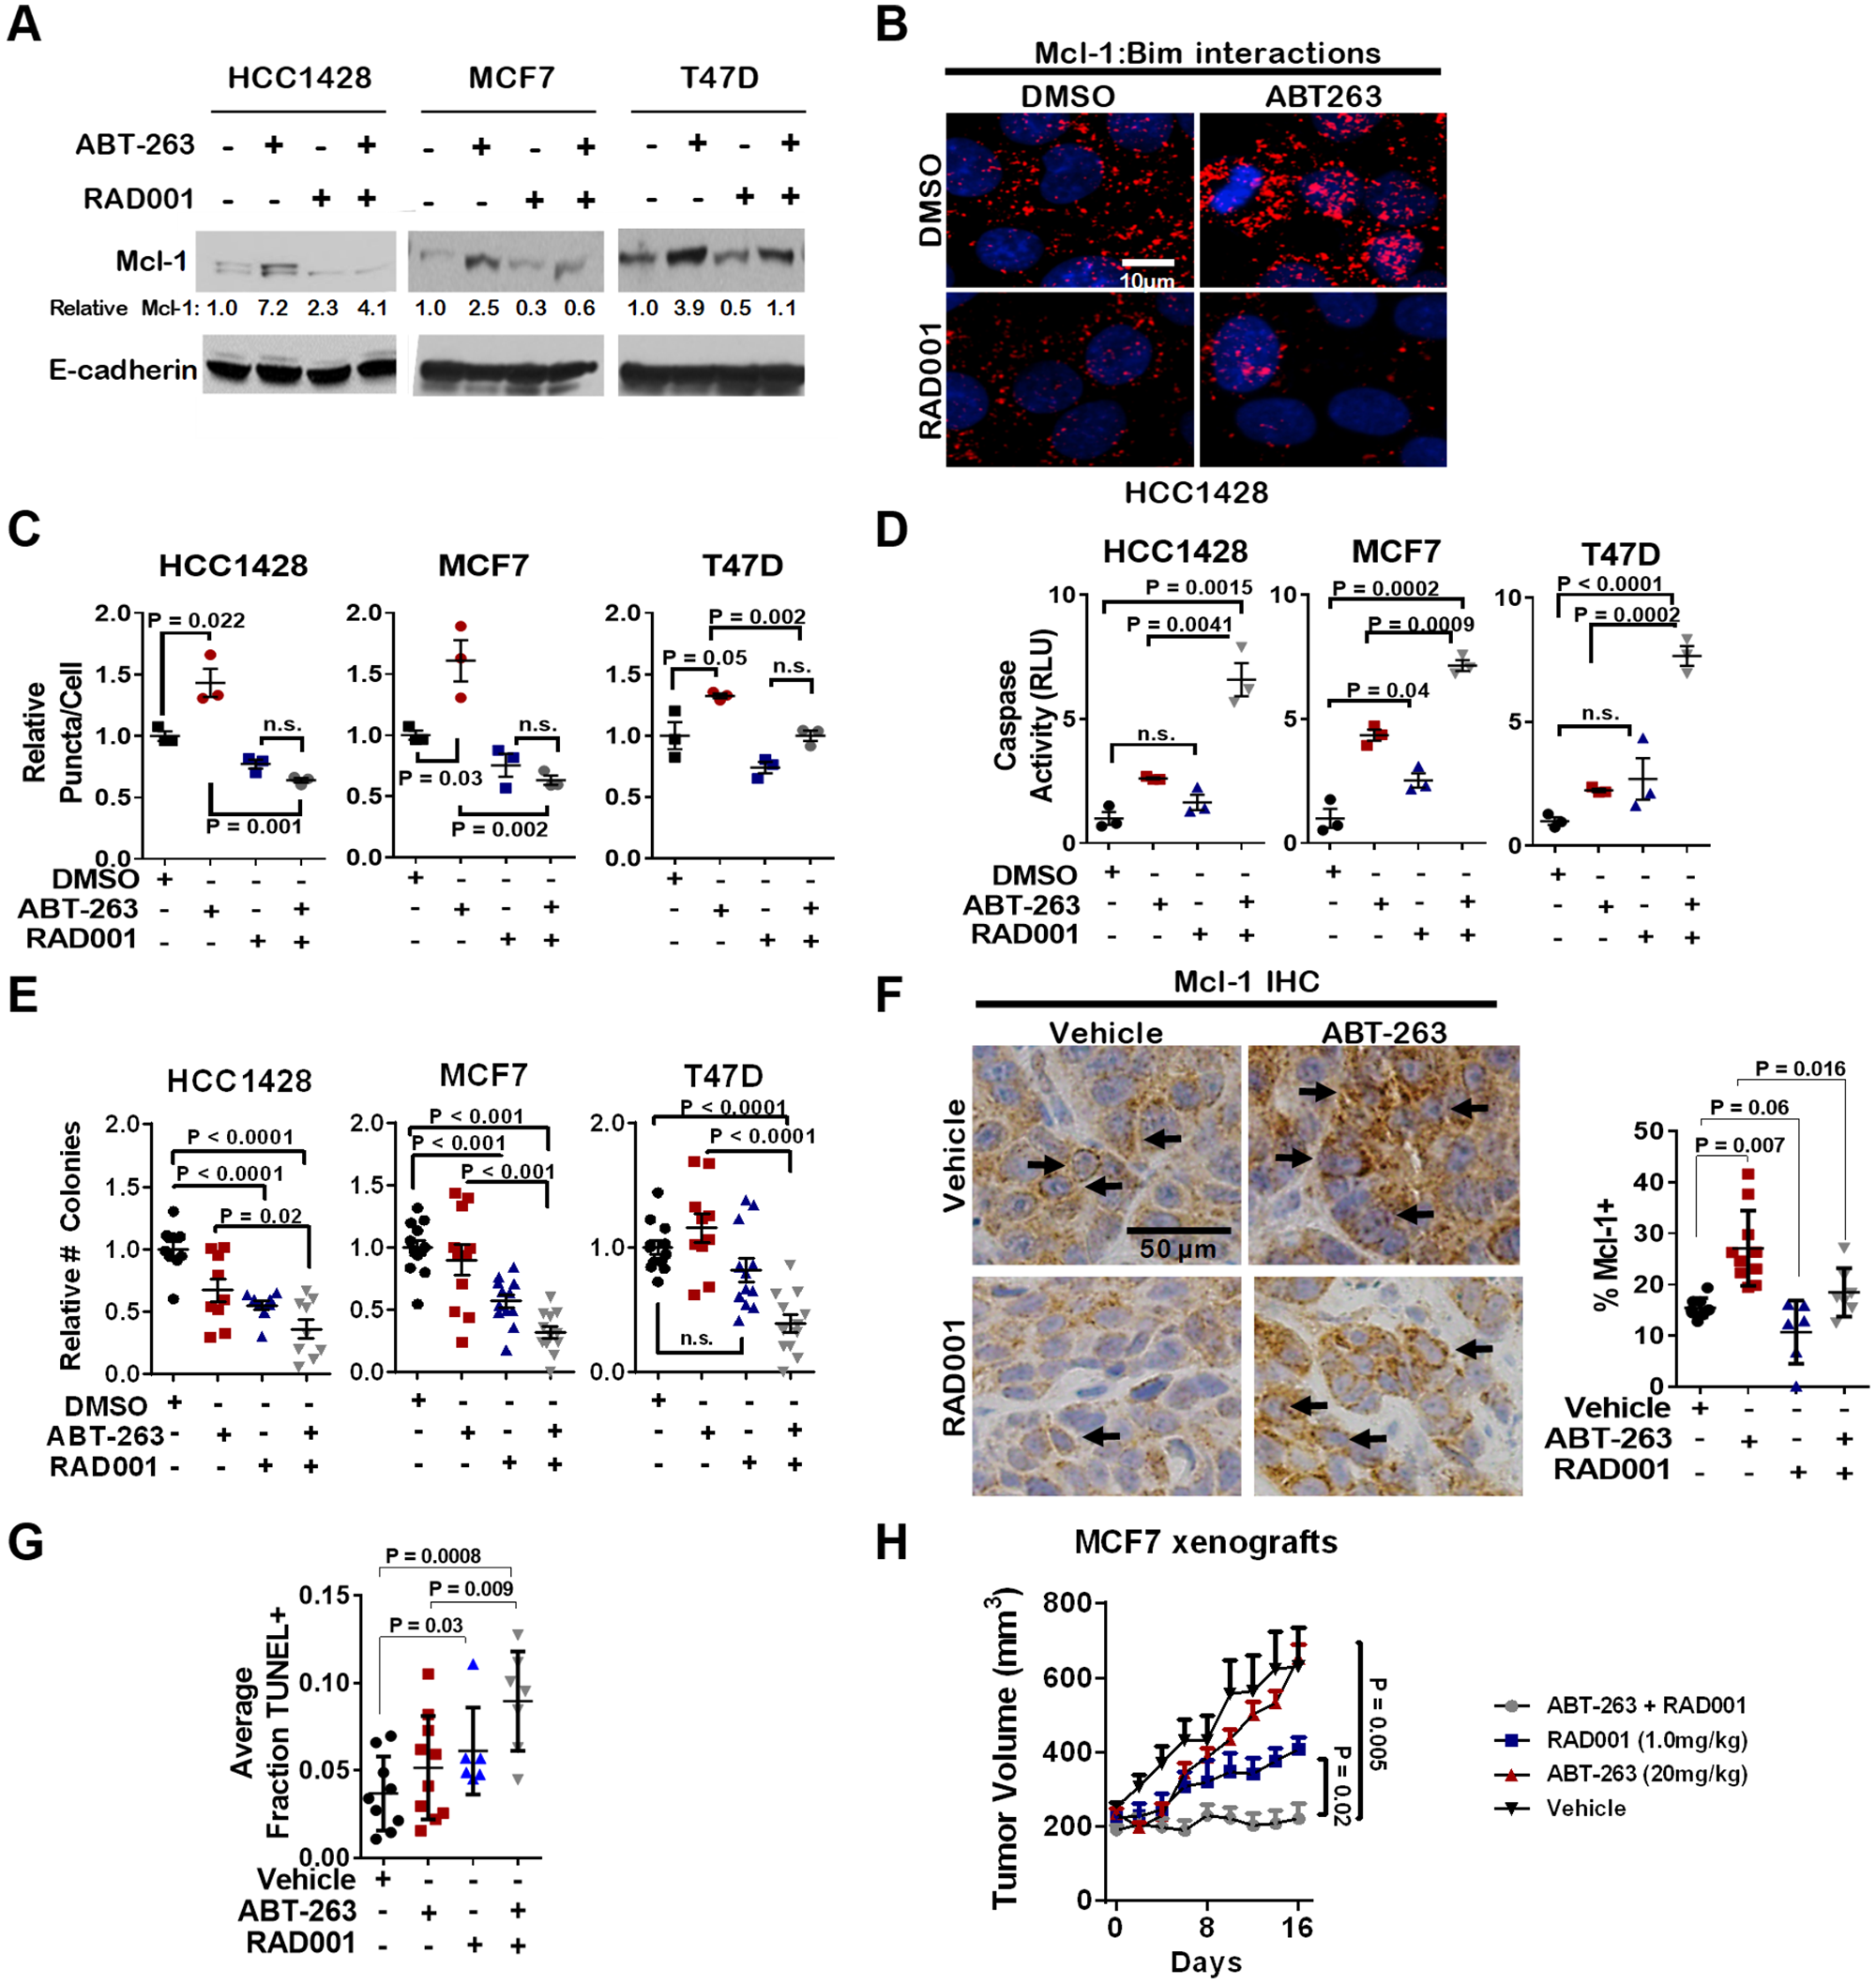 Inhibition of mTORC1 blocks Mcl-1 upregulation in response to ABT-263, and sensitizes ERα+ breast cancers to ABT-263-mediated cell death.